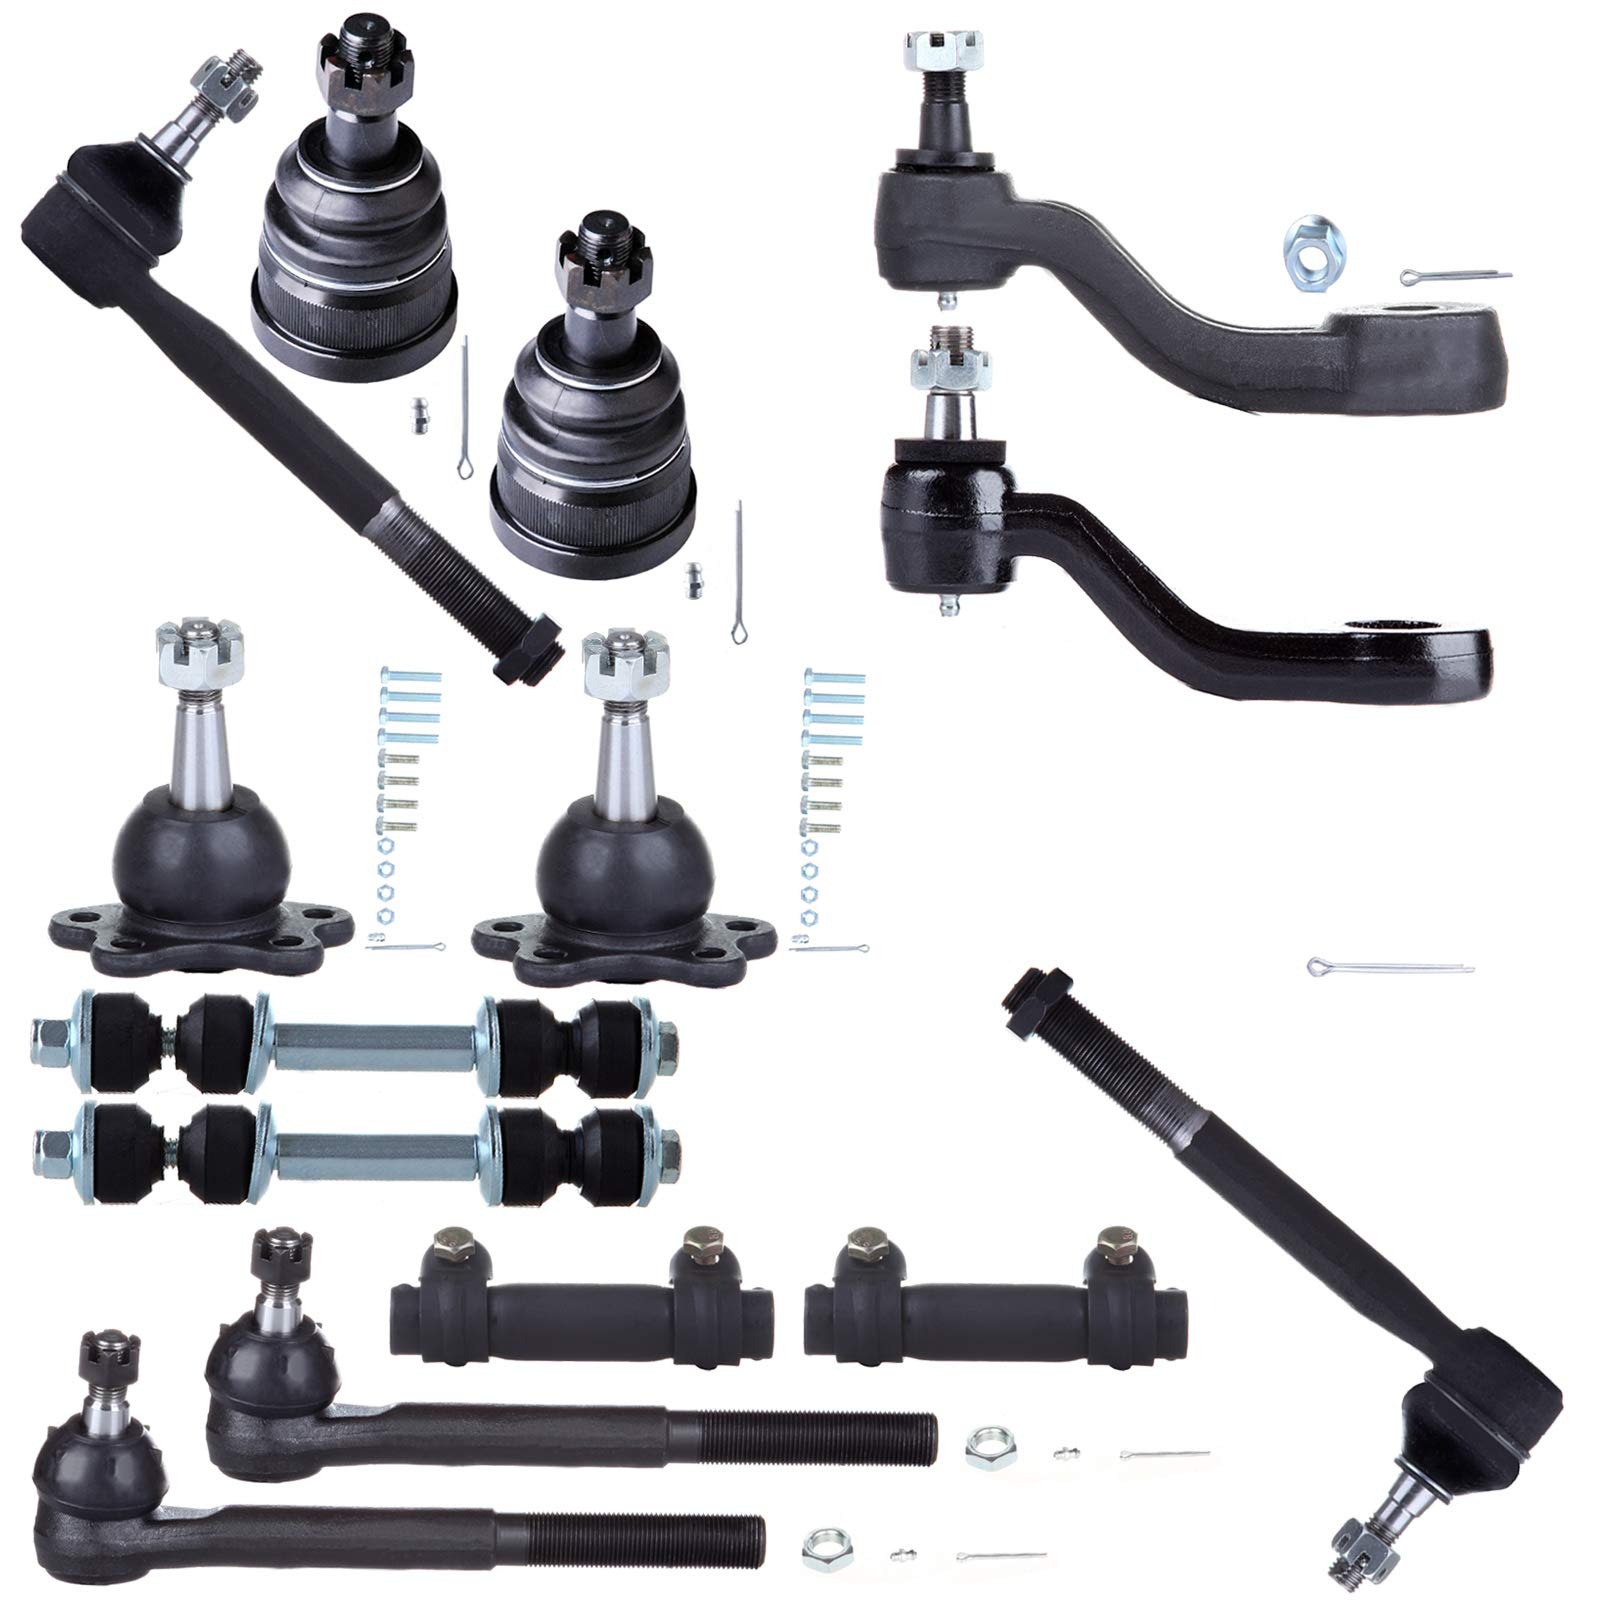 SCITOO 14pcs Suspension Kit 2 Front Upper 2 Lower Ball Joint 2 Rear Front Sway Bar 1 Pitman Arm 1 Idler Arm 2 Outer 2 Inner Tie Rod End 2 Tie Rod Adjusting Sleeve fit for Chevrolet GMC K6292